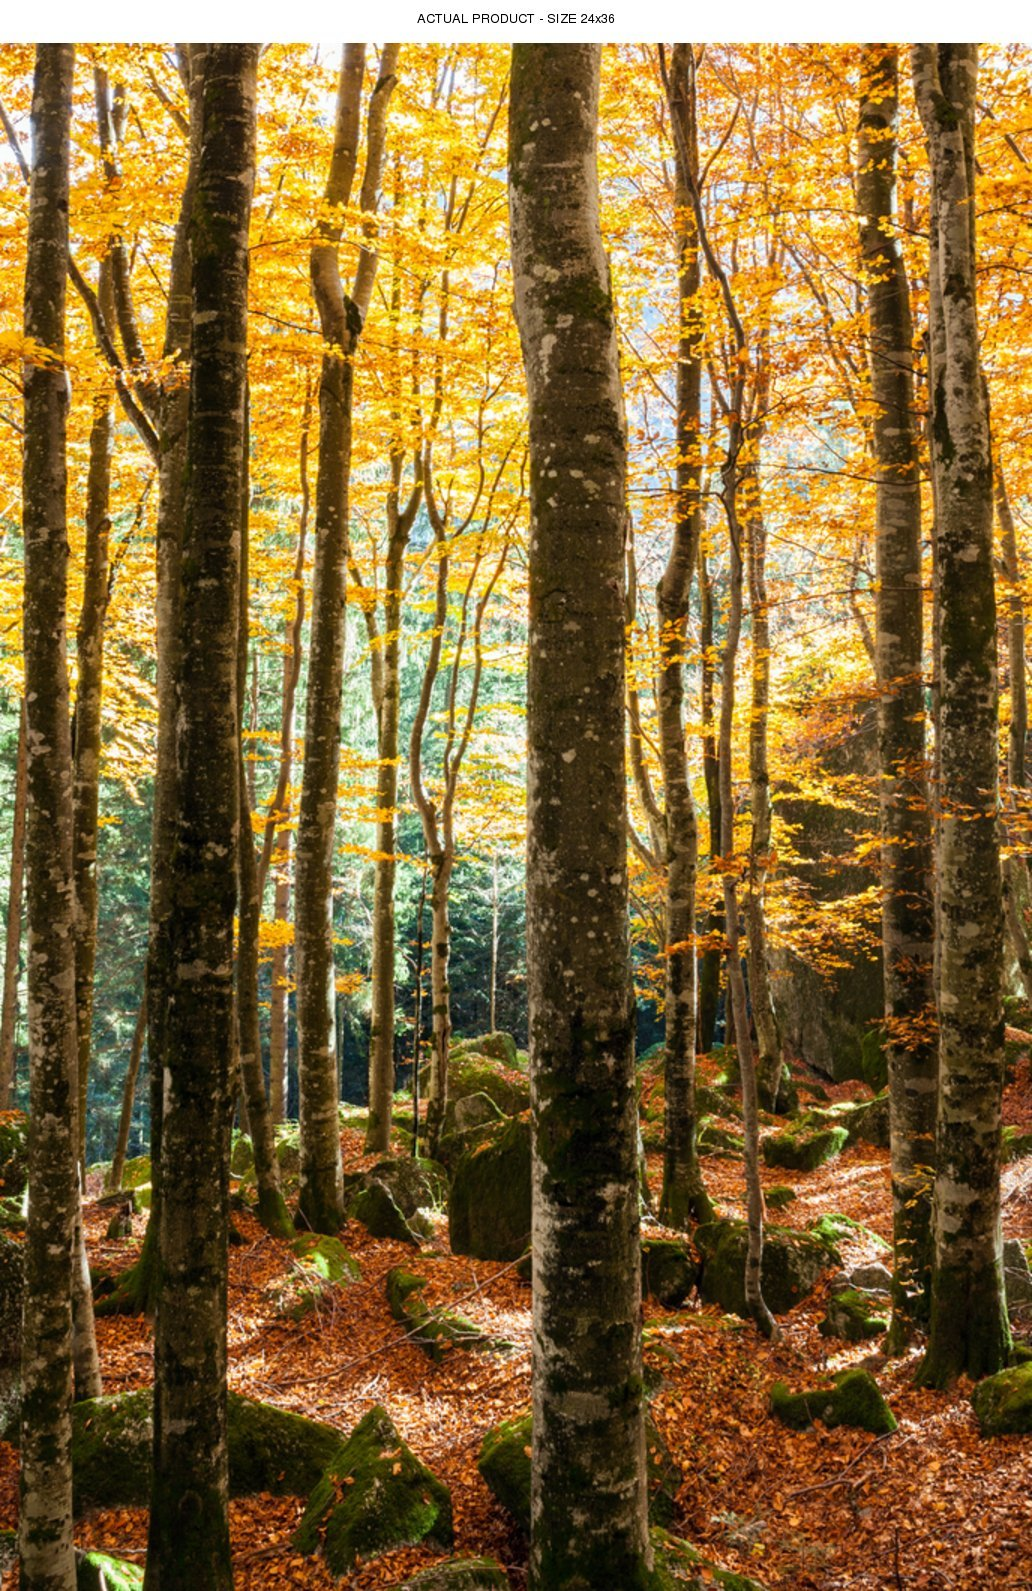 Windowpix 24x36 Inch Decorative Static Cling Window Film Fall Forest Path Printed on Clear for Window Glass Panels. UV Protection, Energy Saving.